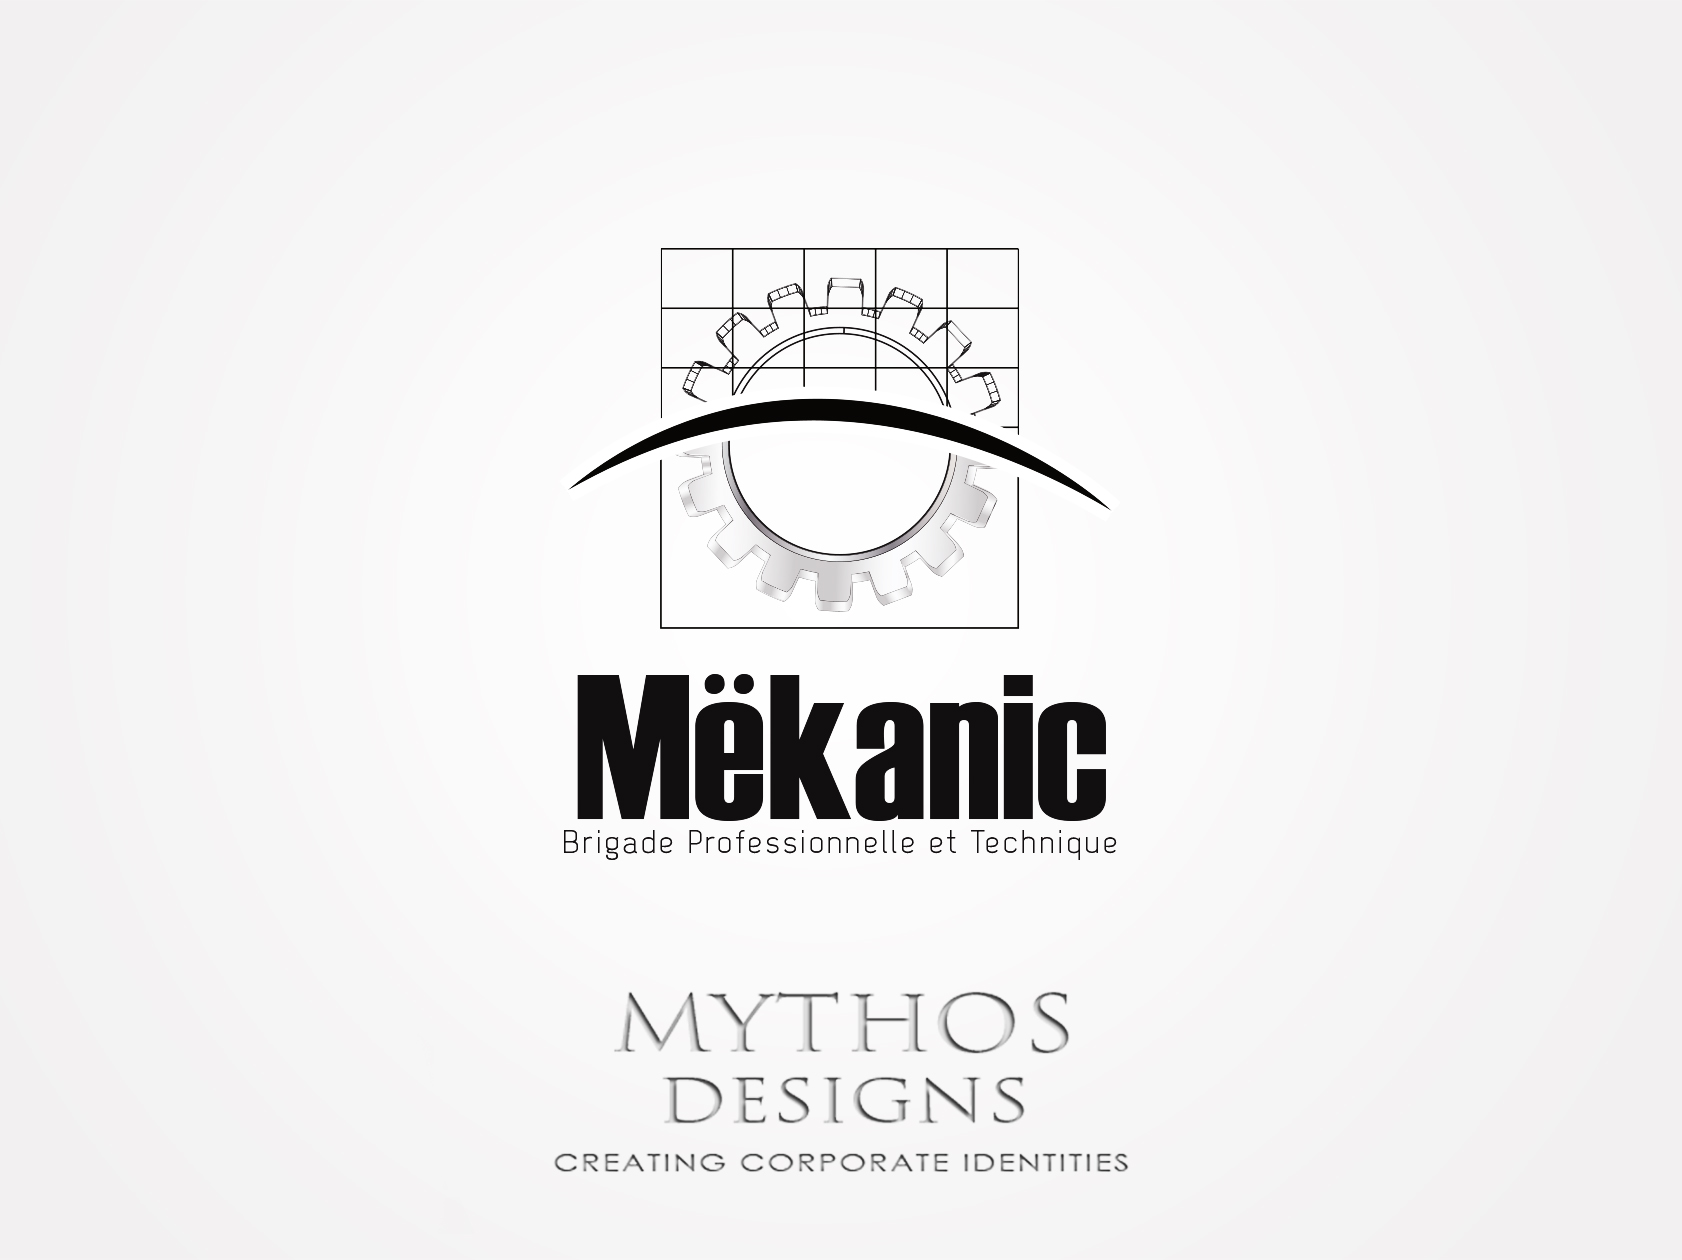 Logo Design by Mythos Designs - Entry No. 181 in the Logo Design Contest Creative Logo Design for MËKANIC - Professional and technical squad.